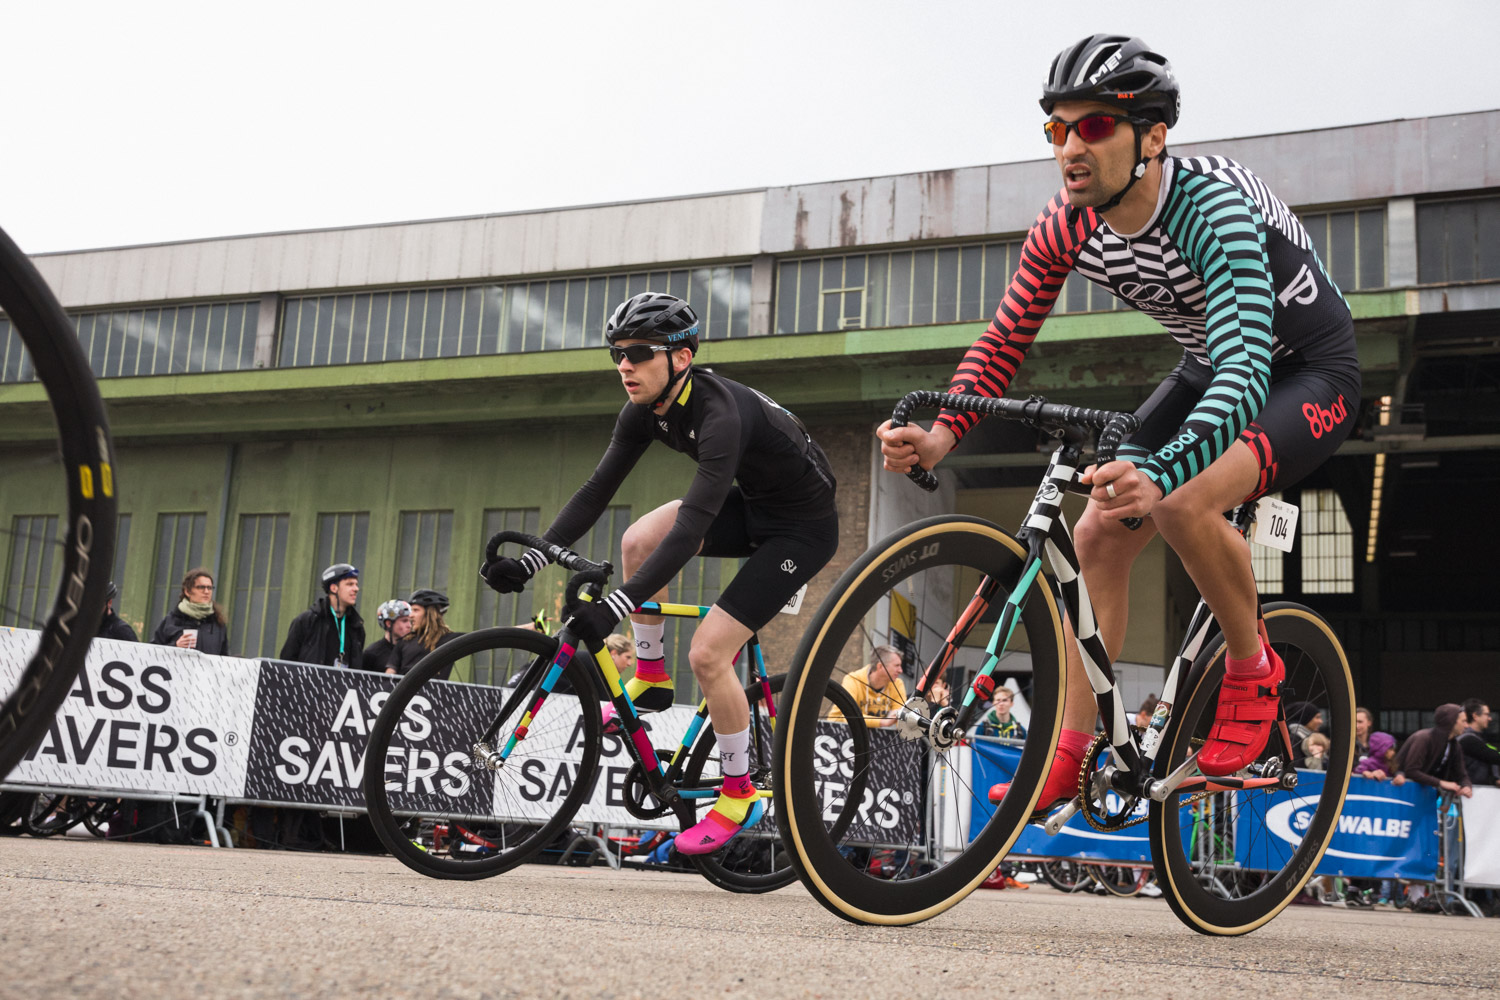 8brcrit 8bar rookies fixed gear crit 7 - Schnell, schneller, 8bar crit 2018 - der Rennbericht!